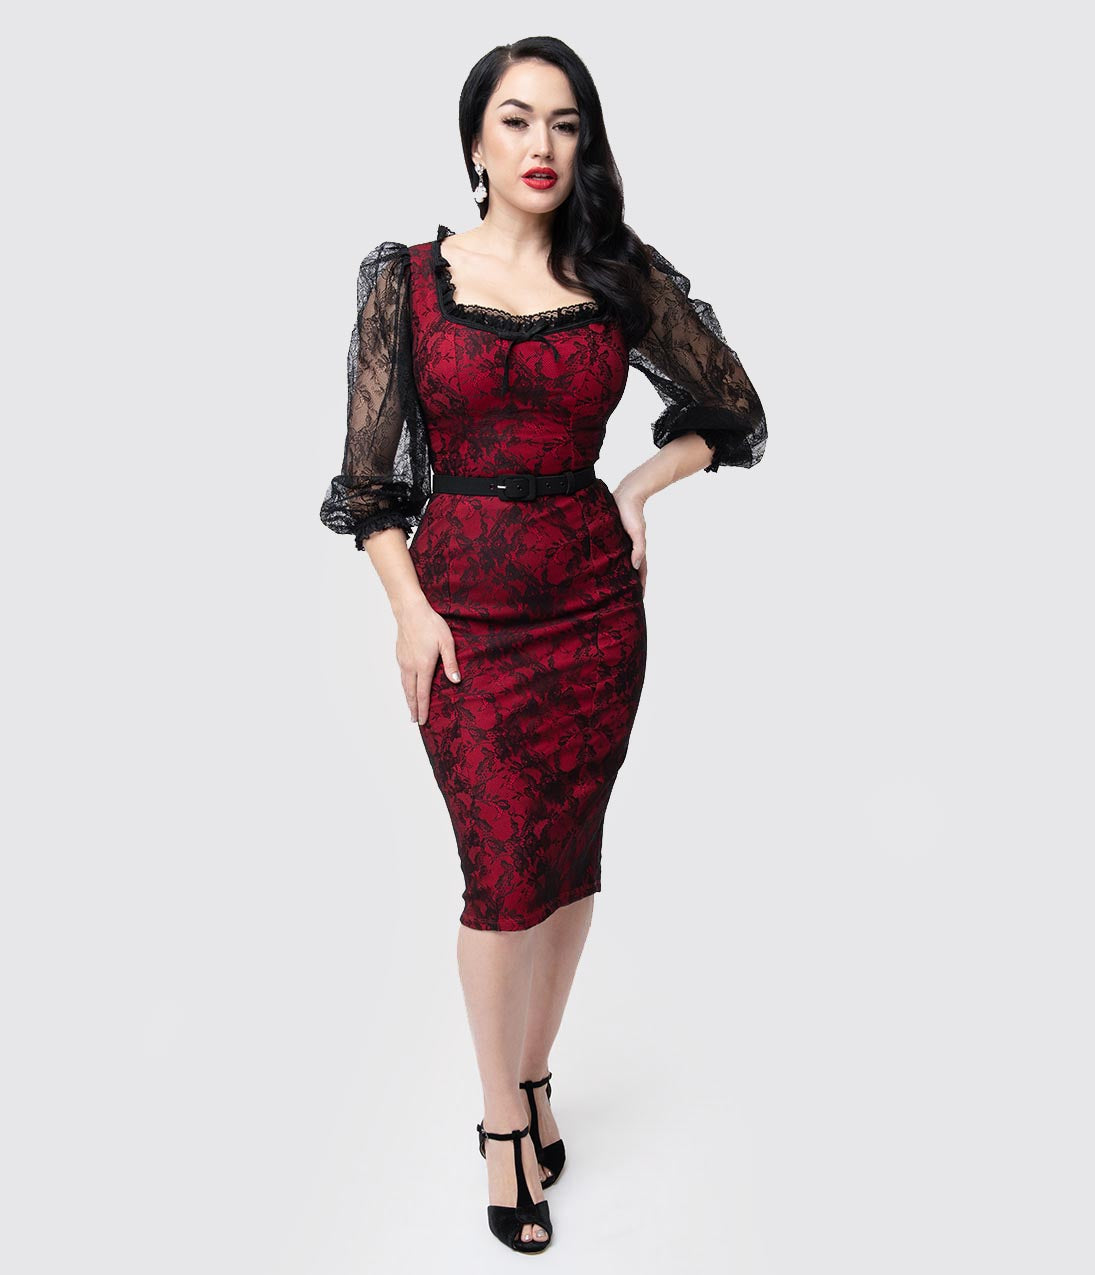 1930s Dresses | 30s Art Deco Dress Vixen By Micheline Pitt Red  Black Lace Decadence Wiggle Dress $166.00 AT vintagedancer.com